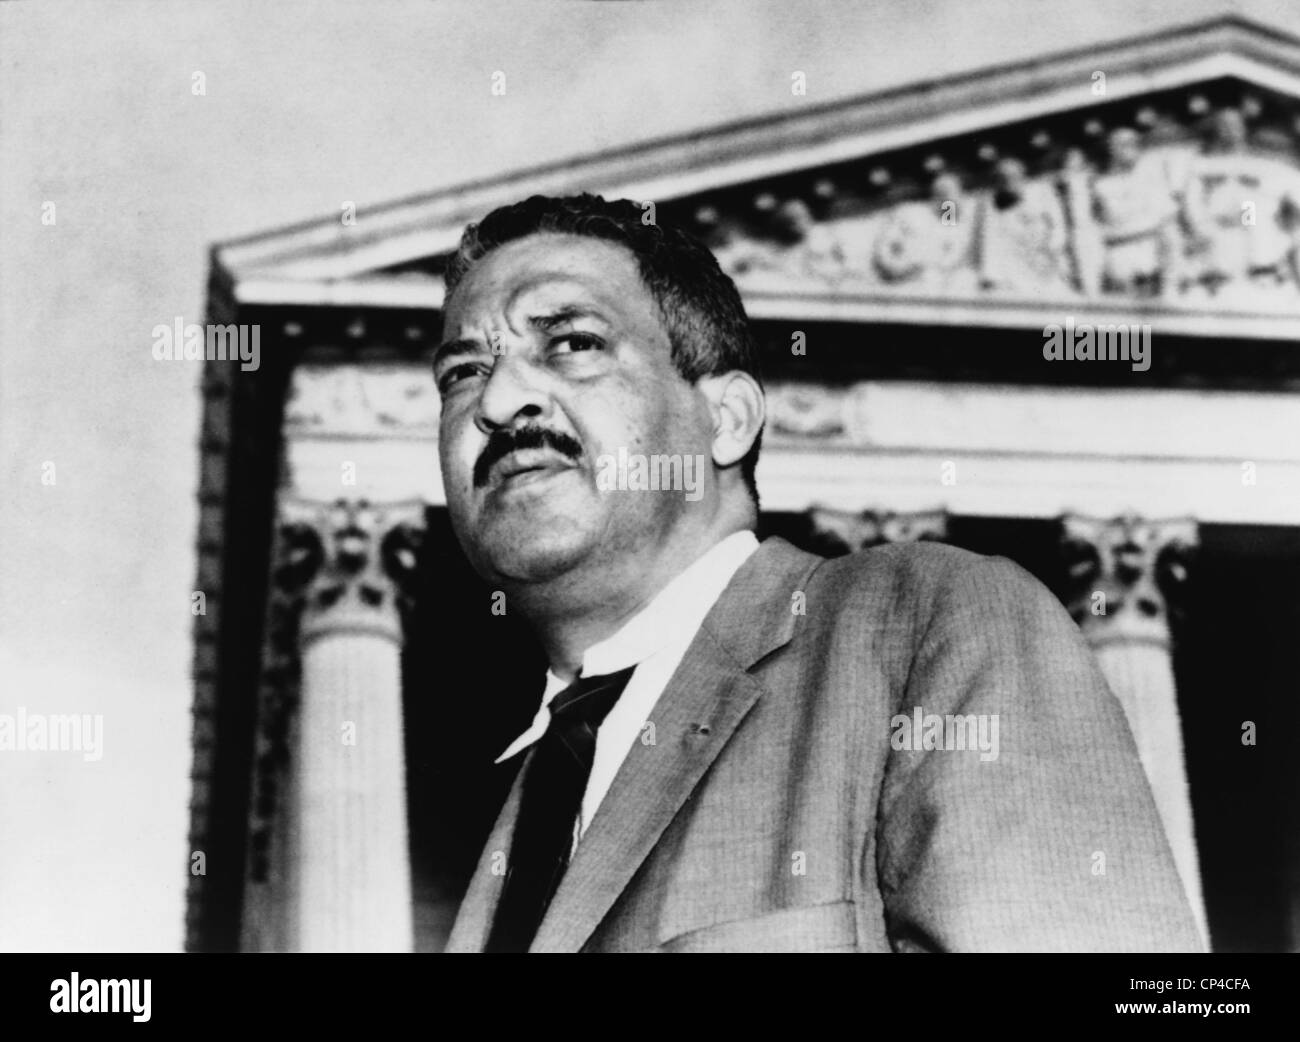 Thurgood Marshall, NAACP Chief Counsel, is shown in front of the Supreme Court in 1958. As the NAACP's chief - Stock Image